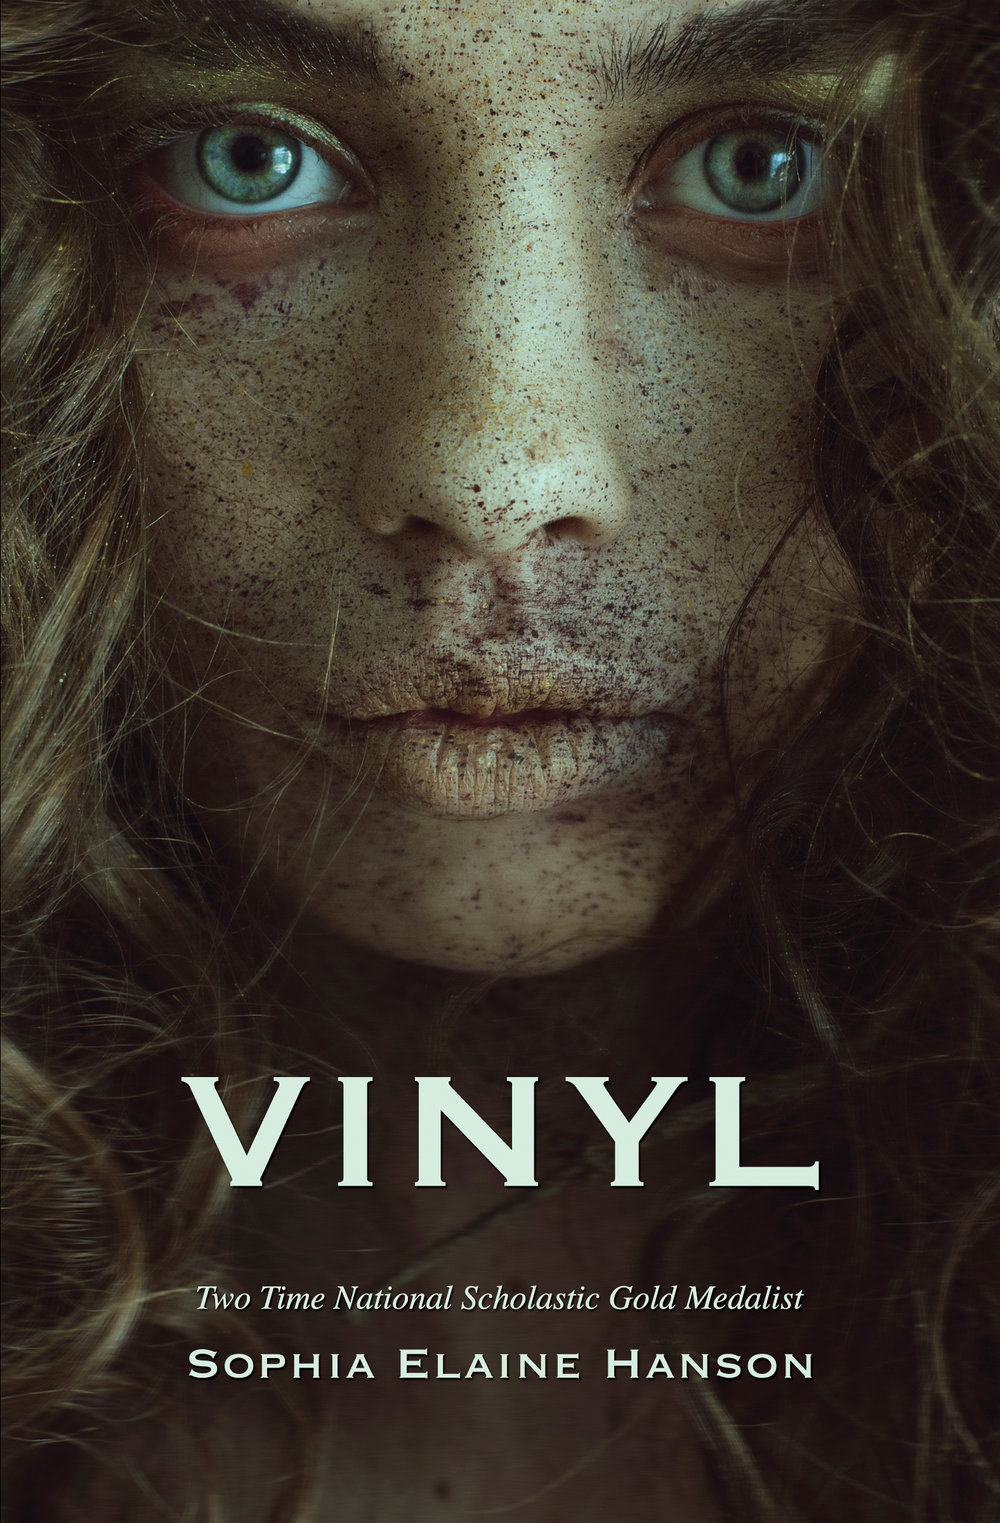 Vinyl by author Sophia Hanson